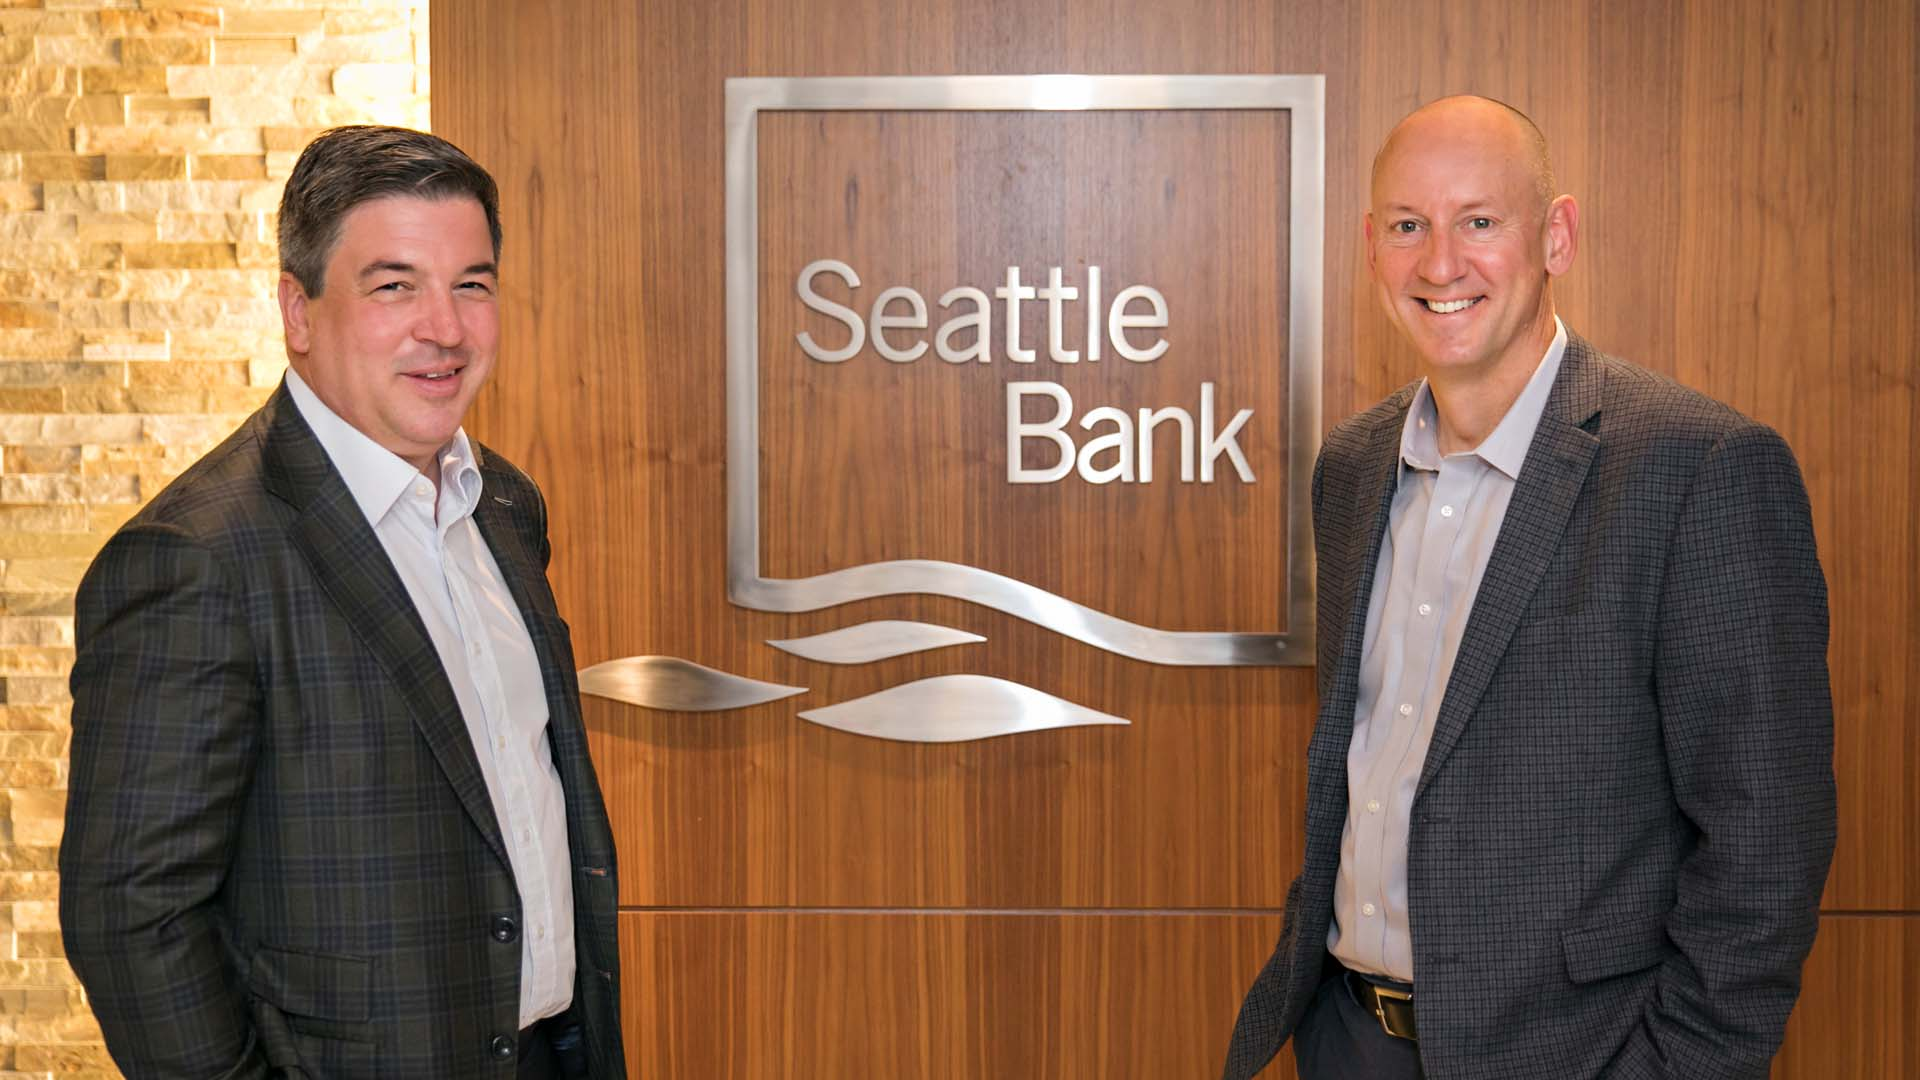 Simon Paris, President, Finastra (L) with John Blizzard, President and CEO, Seattle Bank (R).